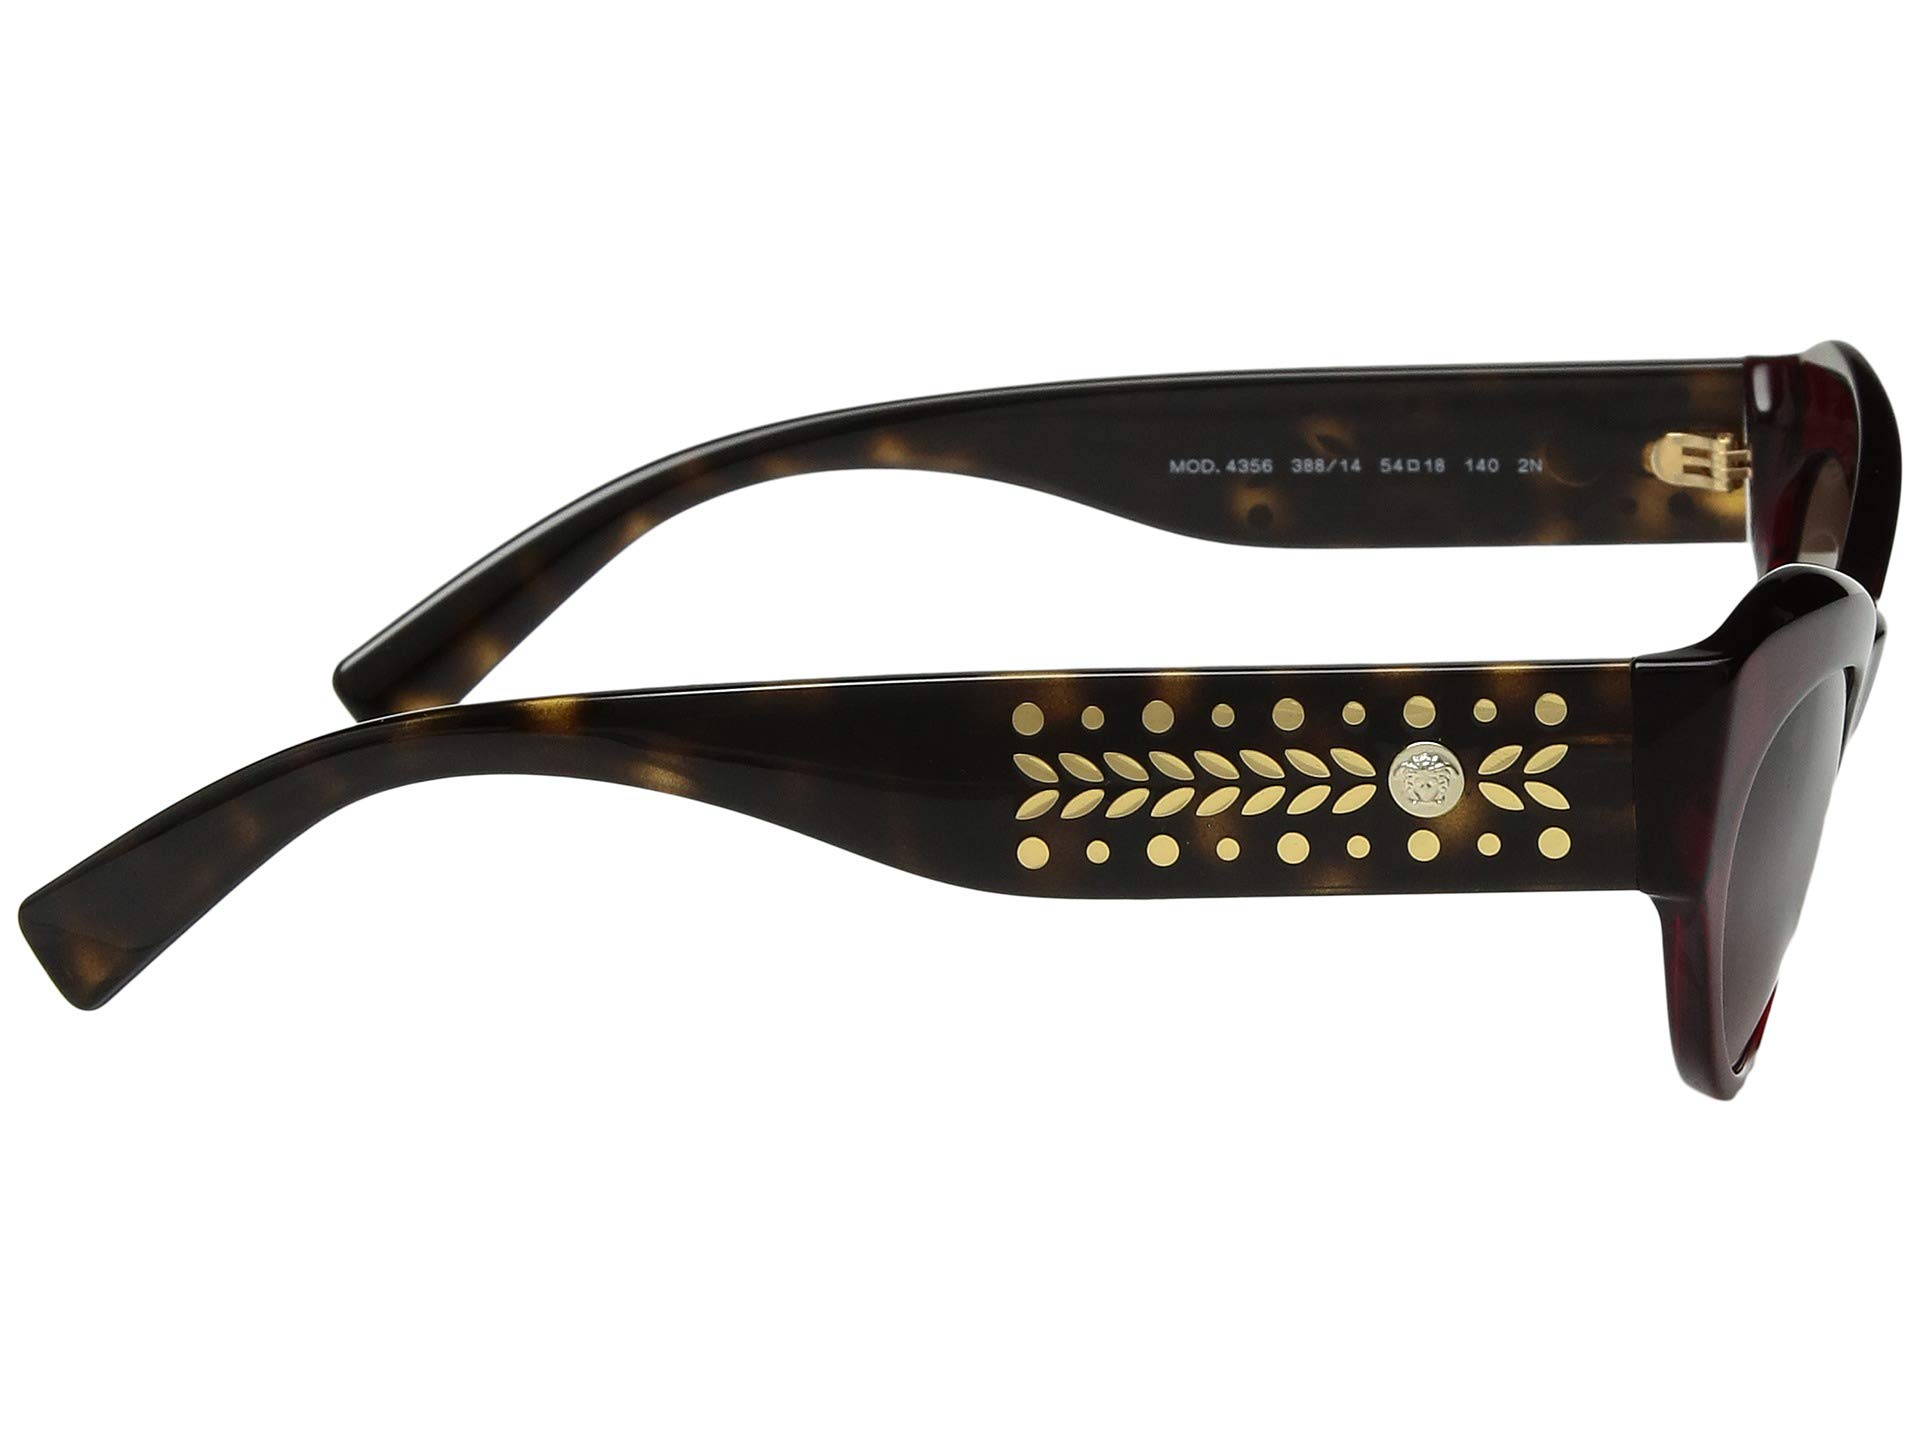 Versace VE4356 at Luxury.Zappos.com d4125afb15b